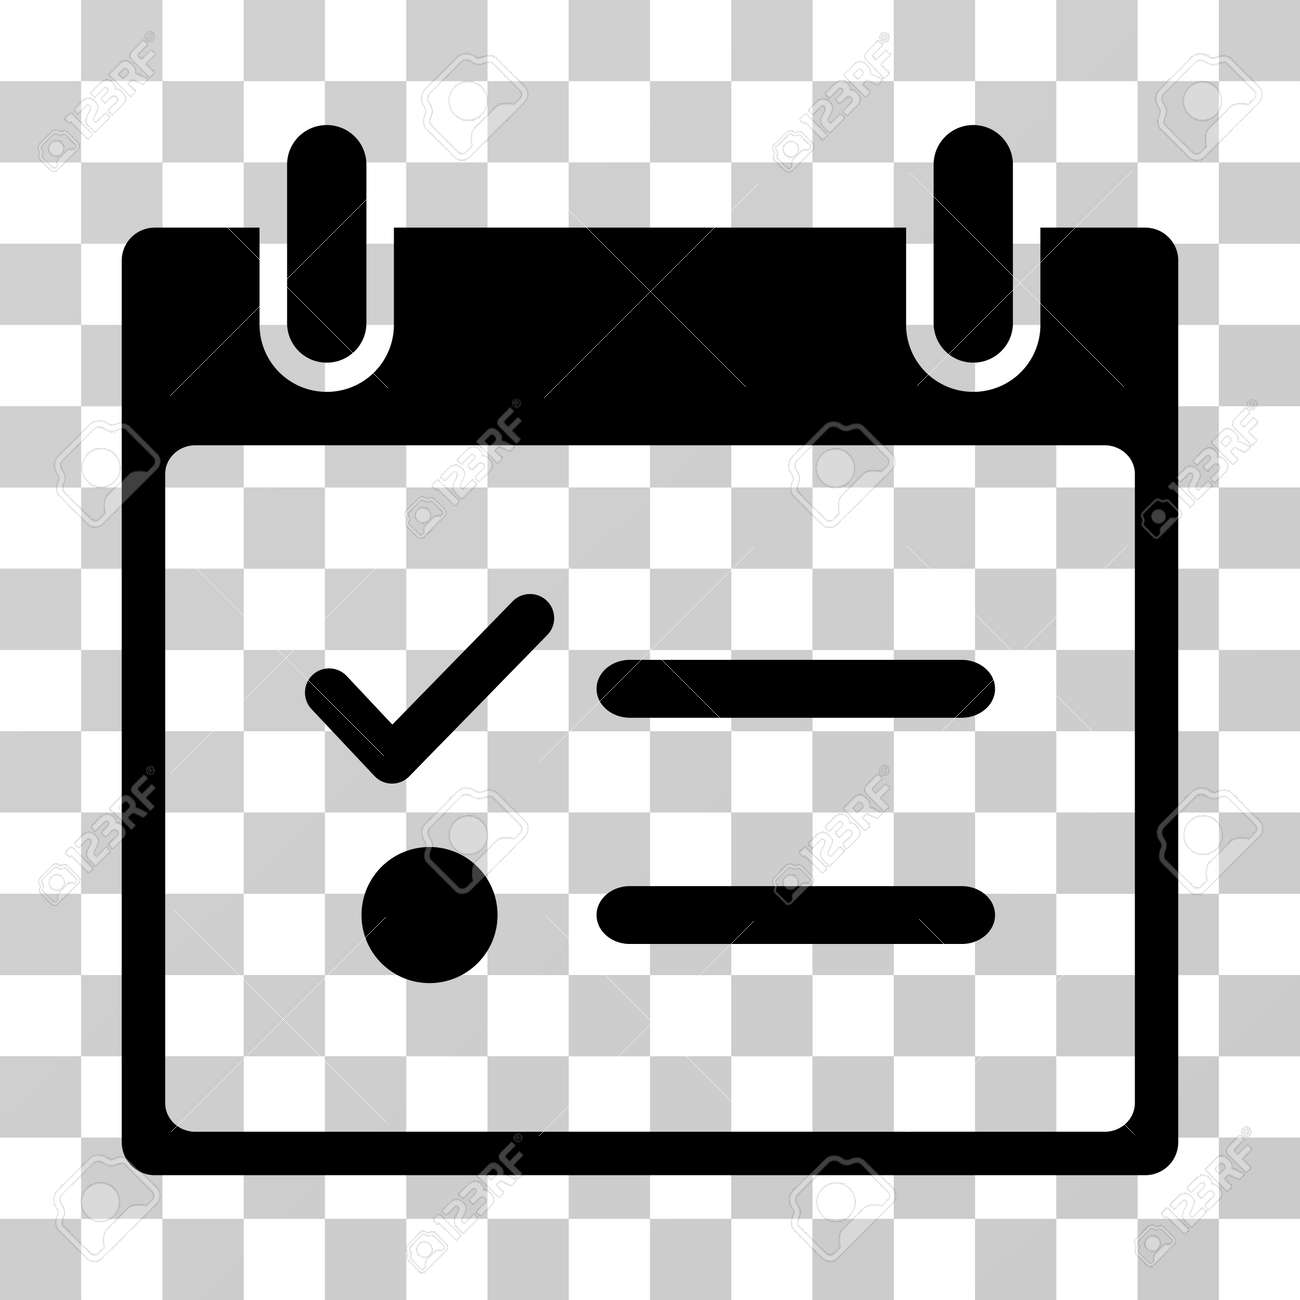 todo list calendar day icon vector illustration style is flat rh 123rf com icon vector calendar calendar icon vector freepik